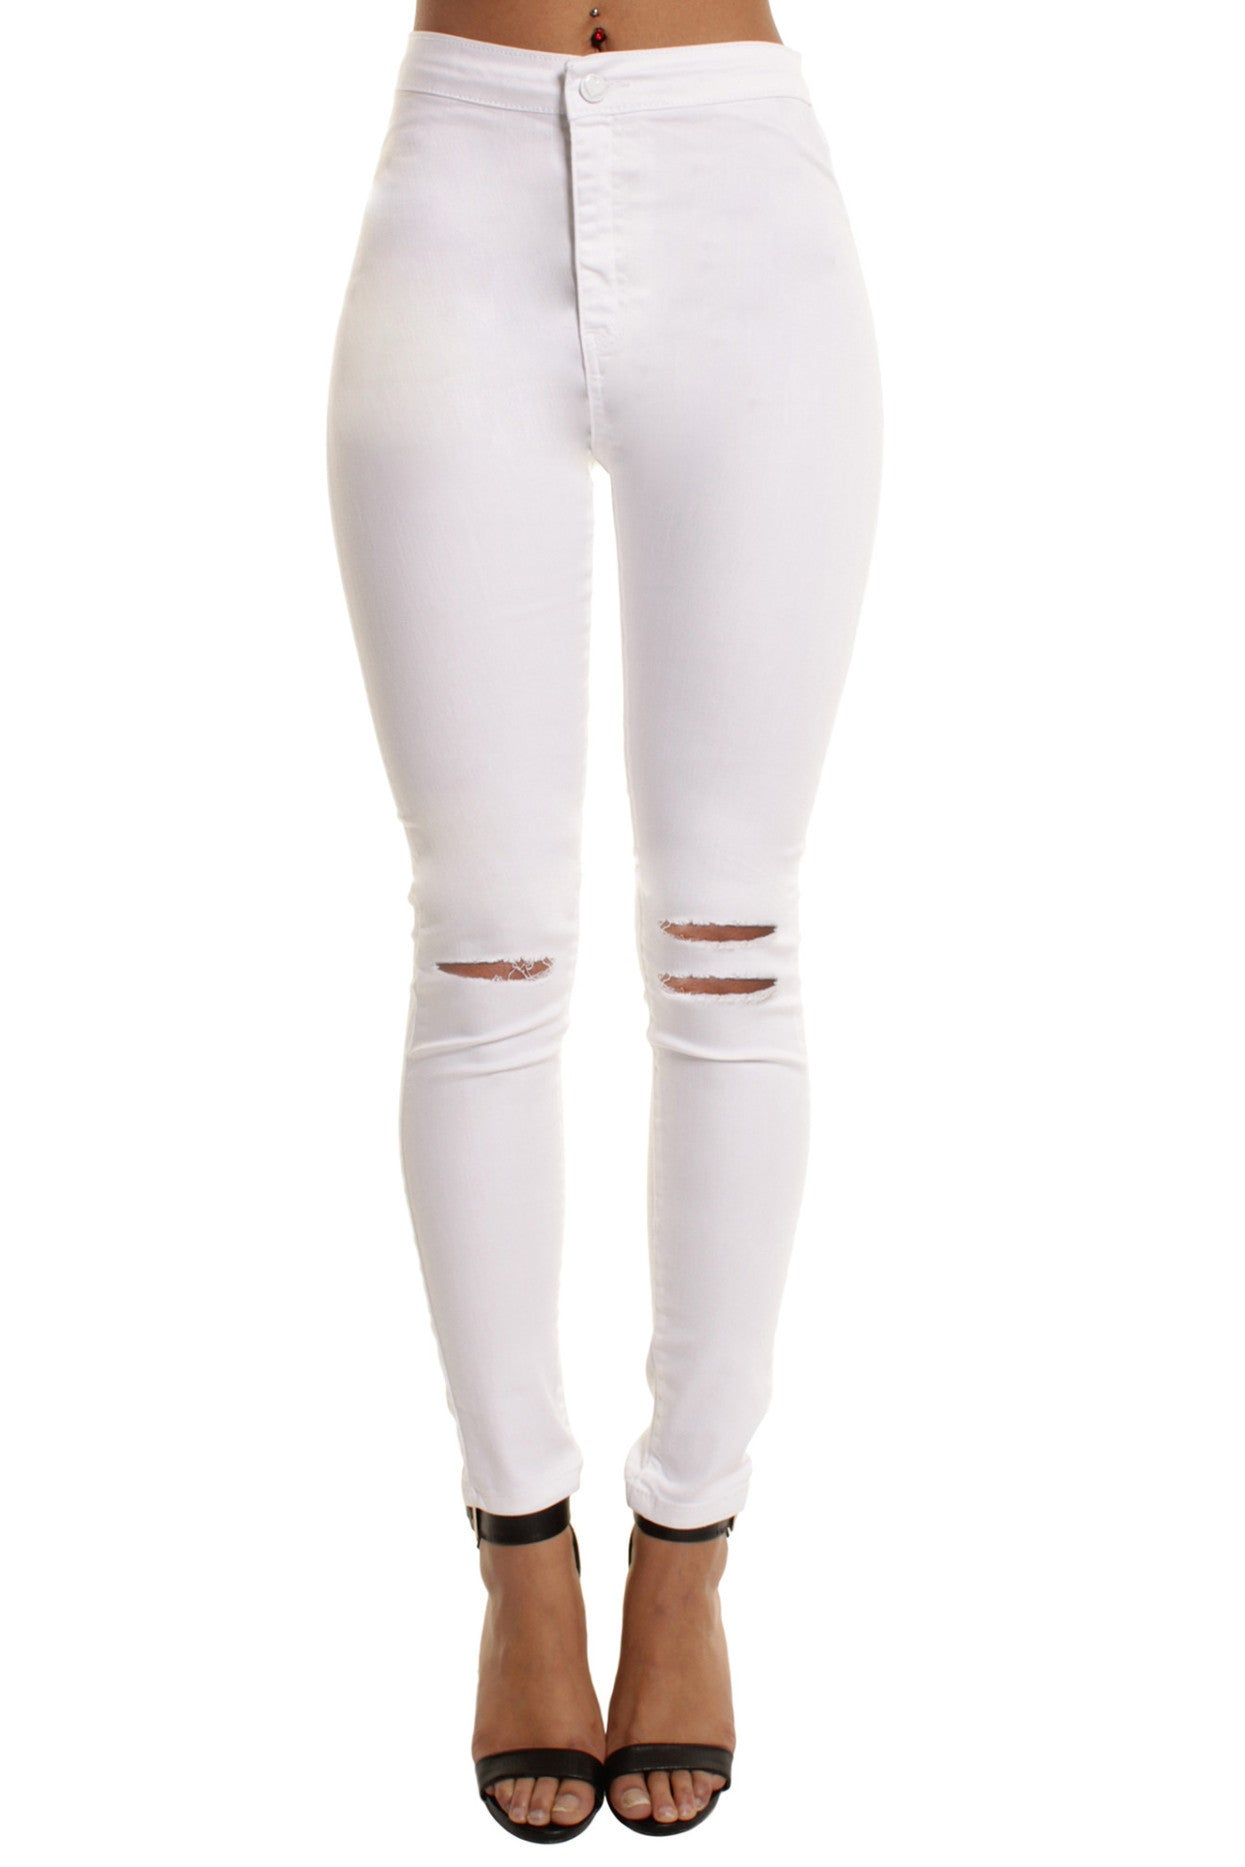 White High Waisted Double Rip Skinny Jeans